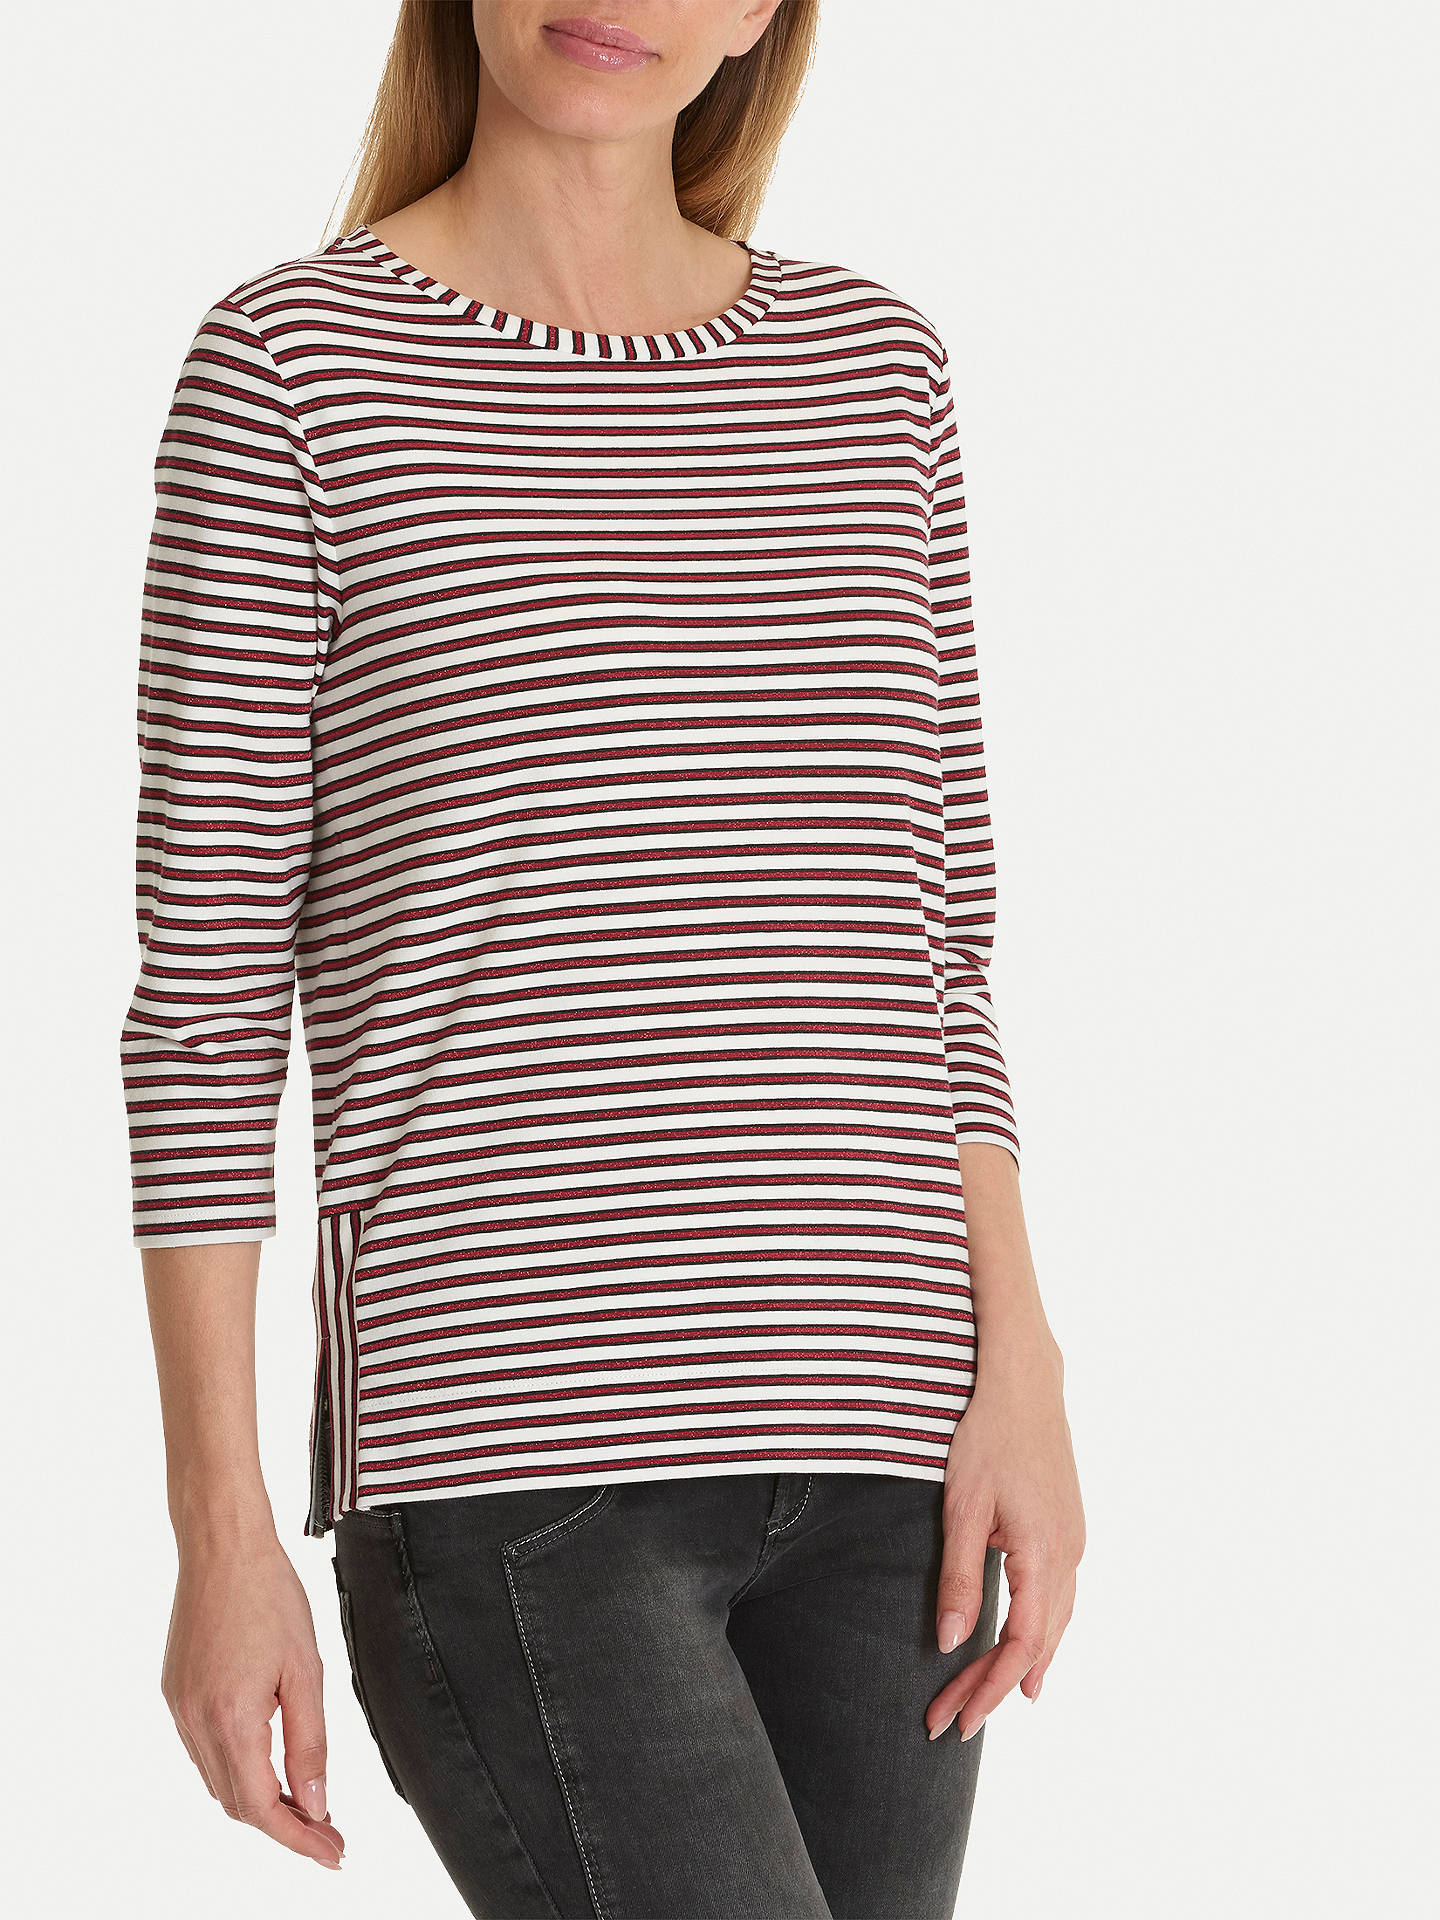 BuyBetty & Co. Striped Jersey Top, White/Red, 10 Online at johnlewis.com